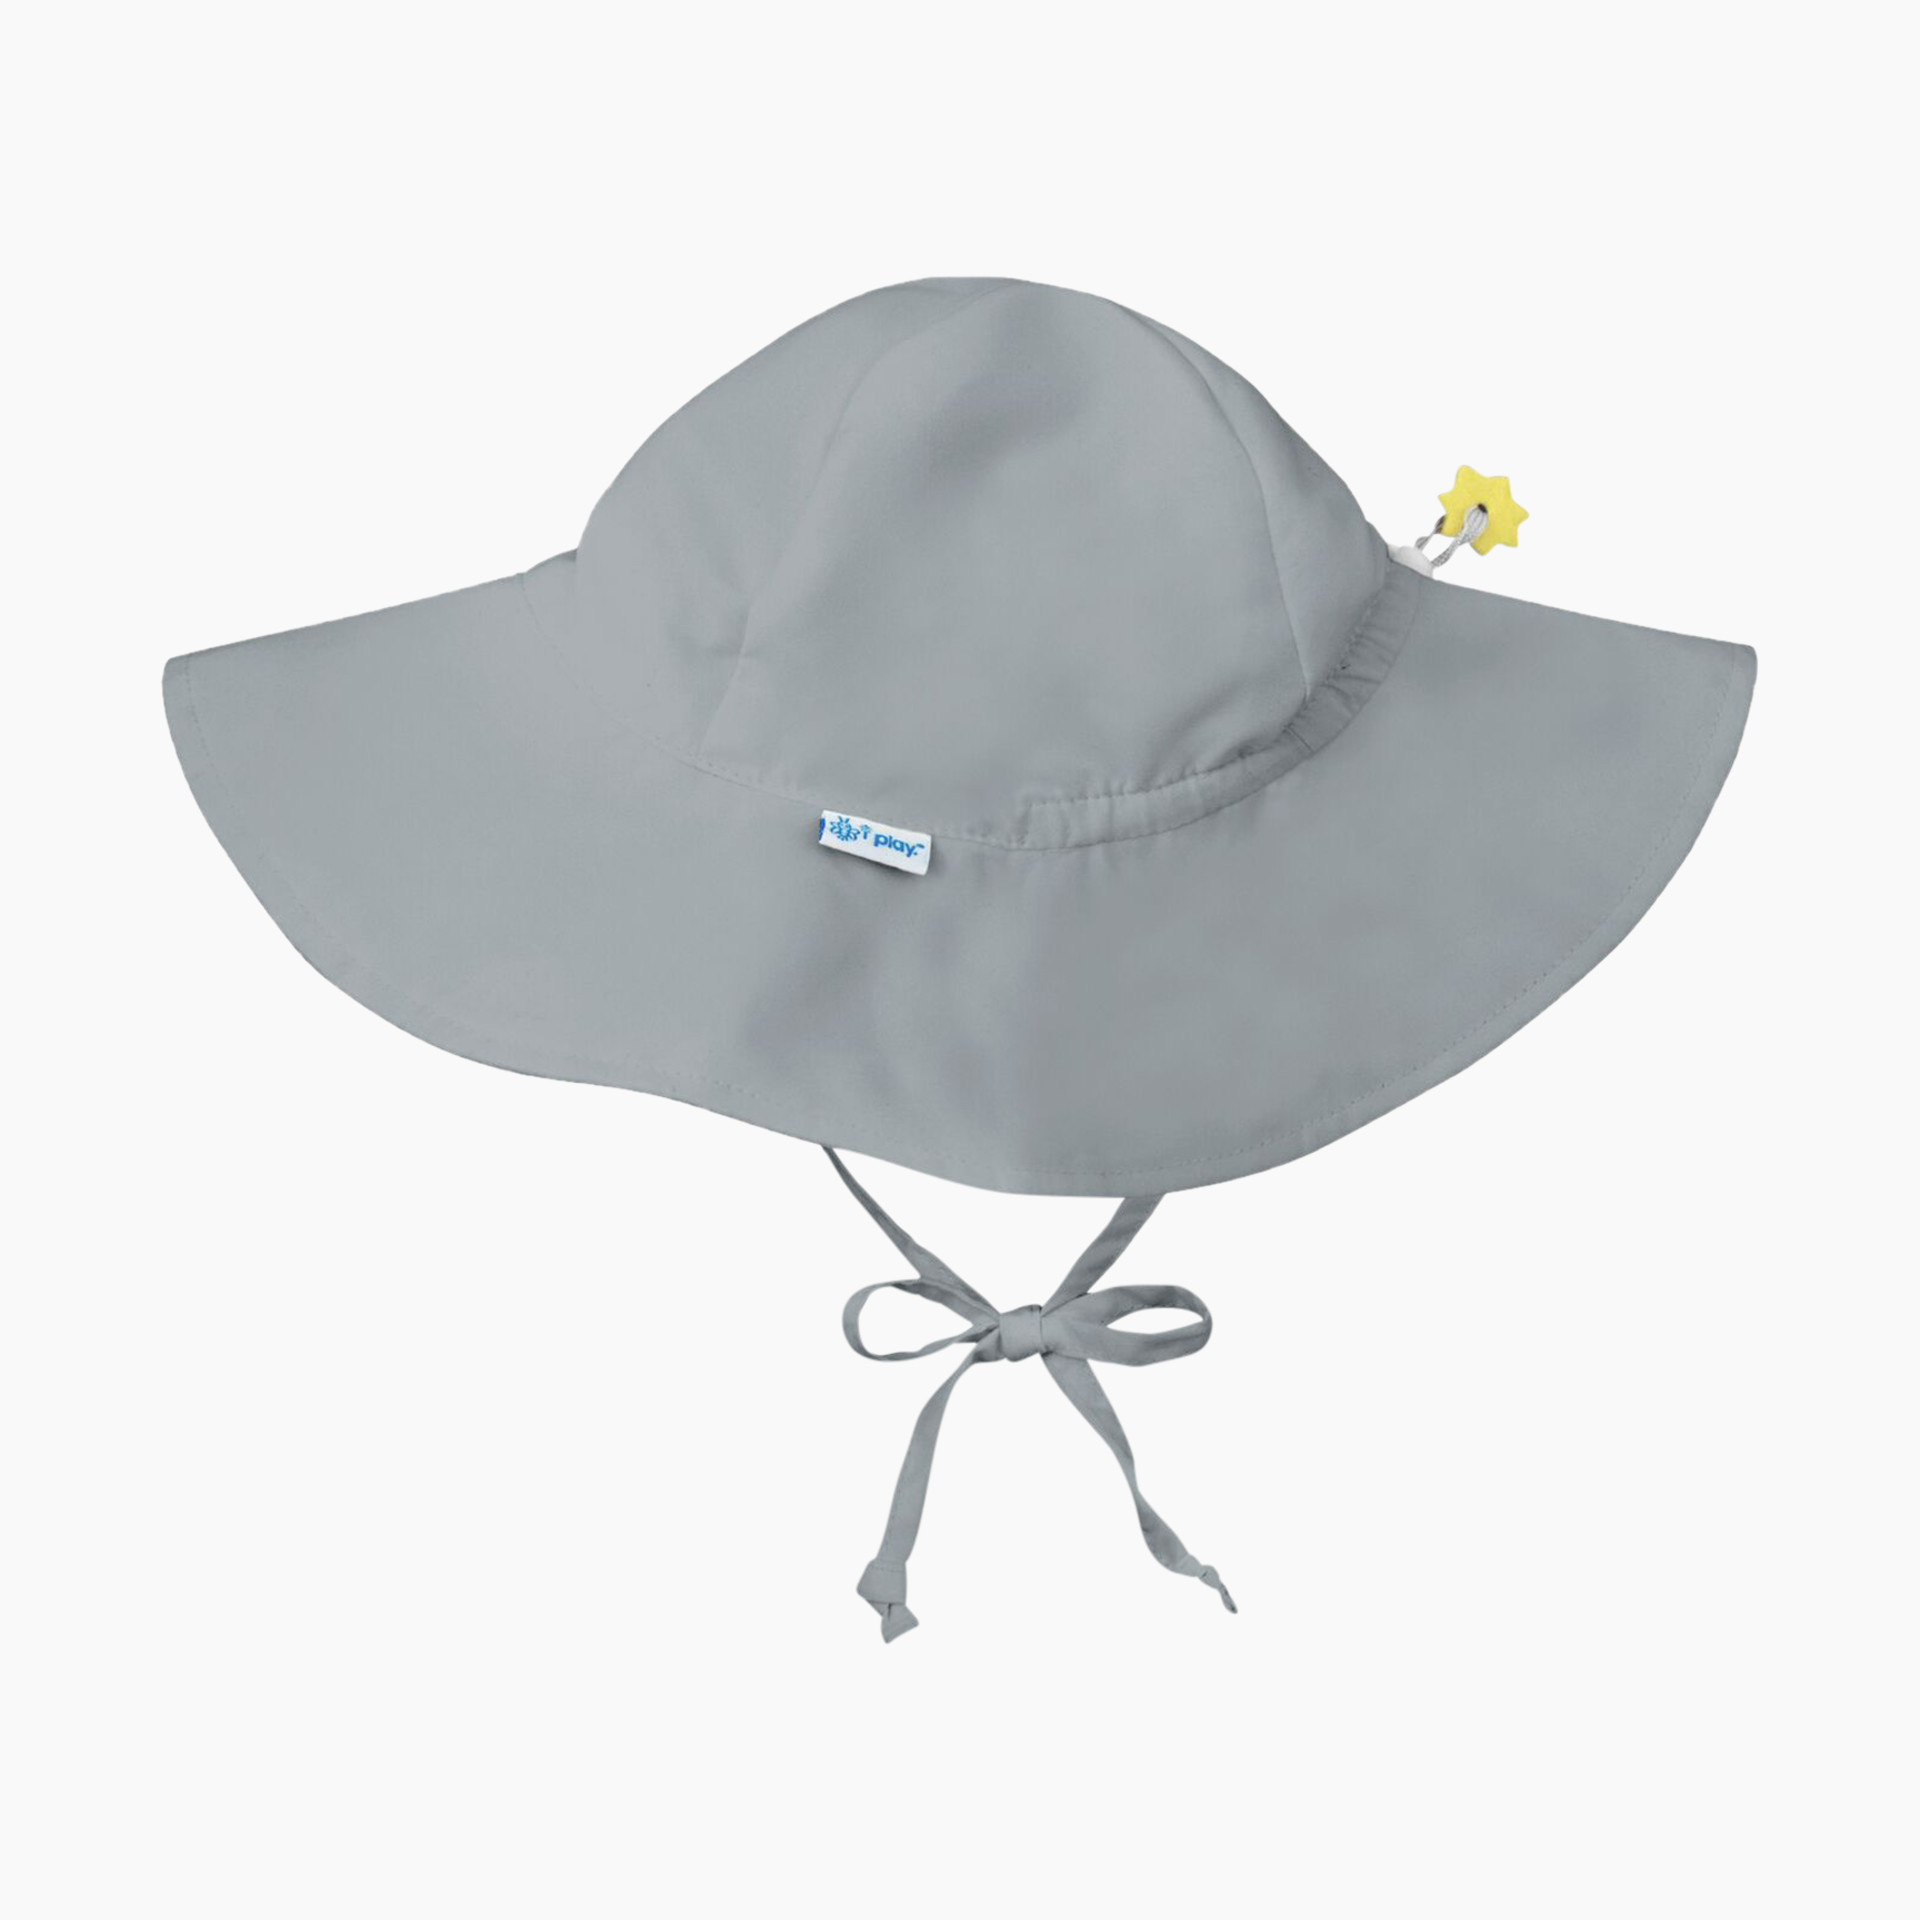 593259020 i play Brim Sun Protection Hat - Grey, 0-6 Months